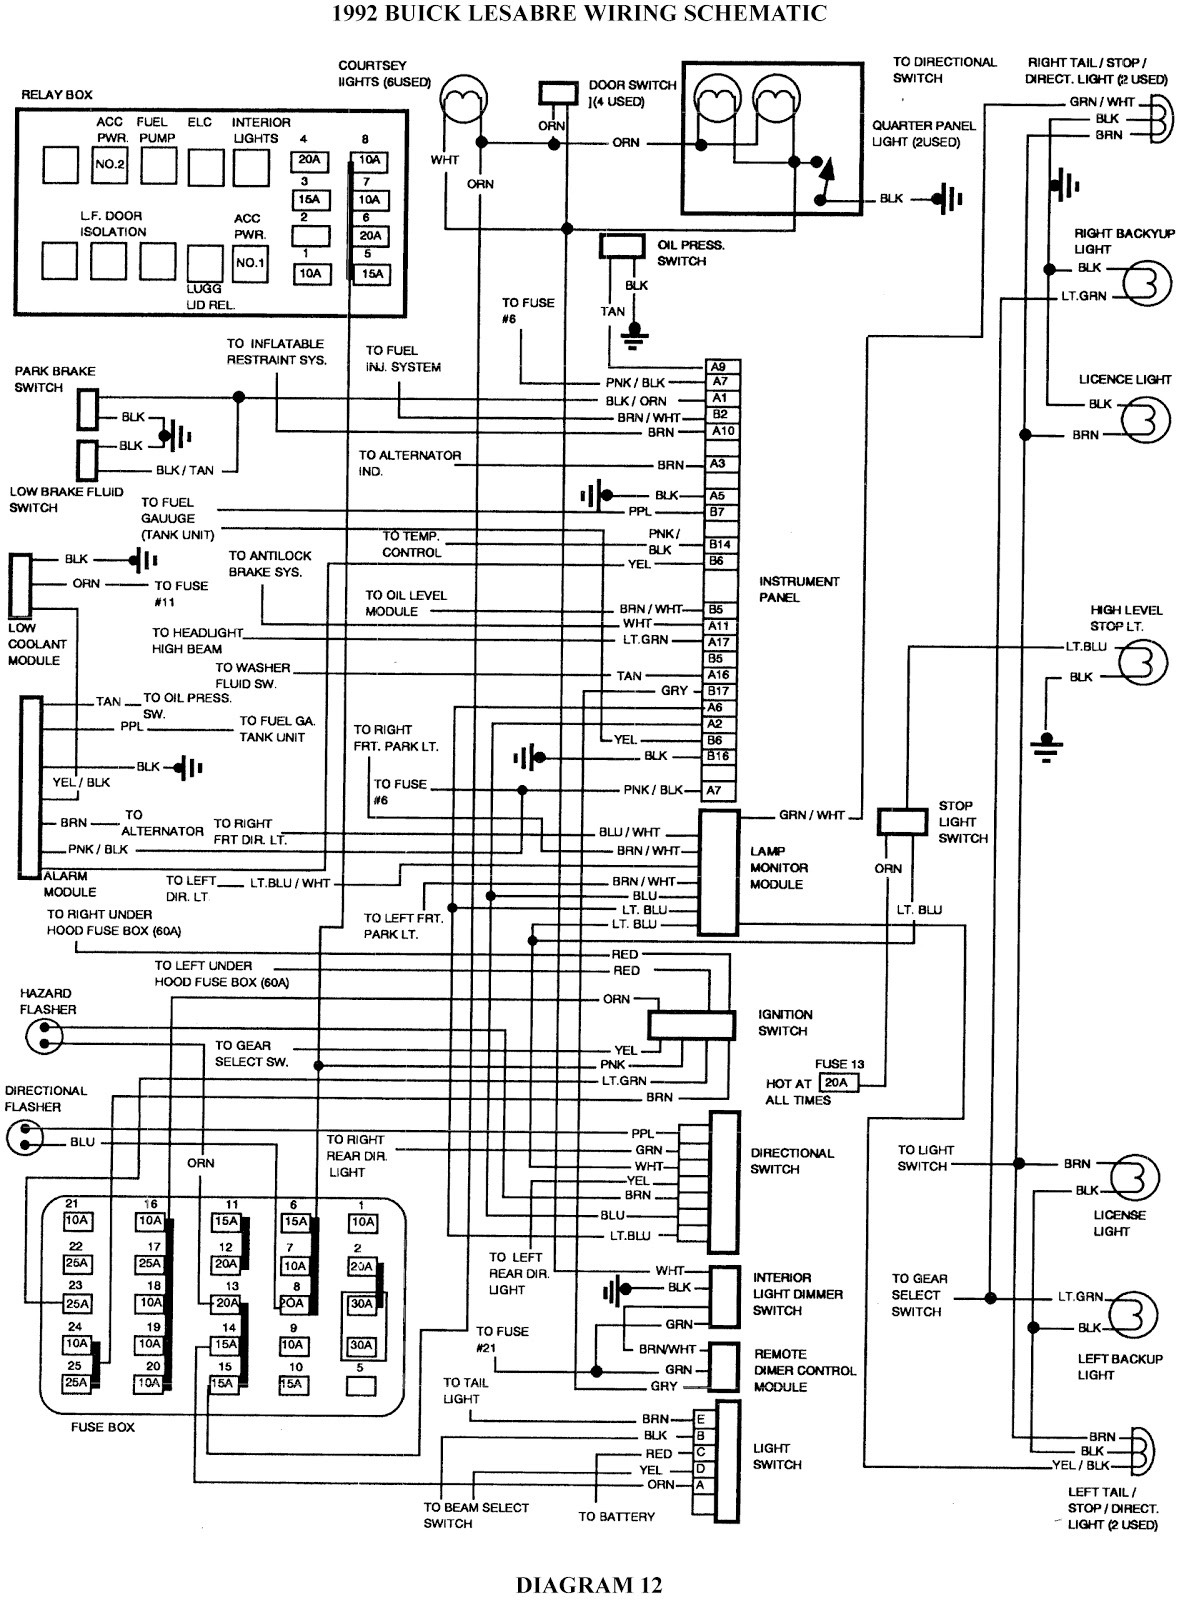 06 impala fuse box 1992 buick lesabre schematic wiring diagrams schematic 06 charger fuse box diagram #7